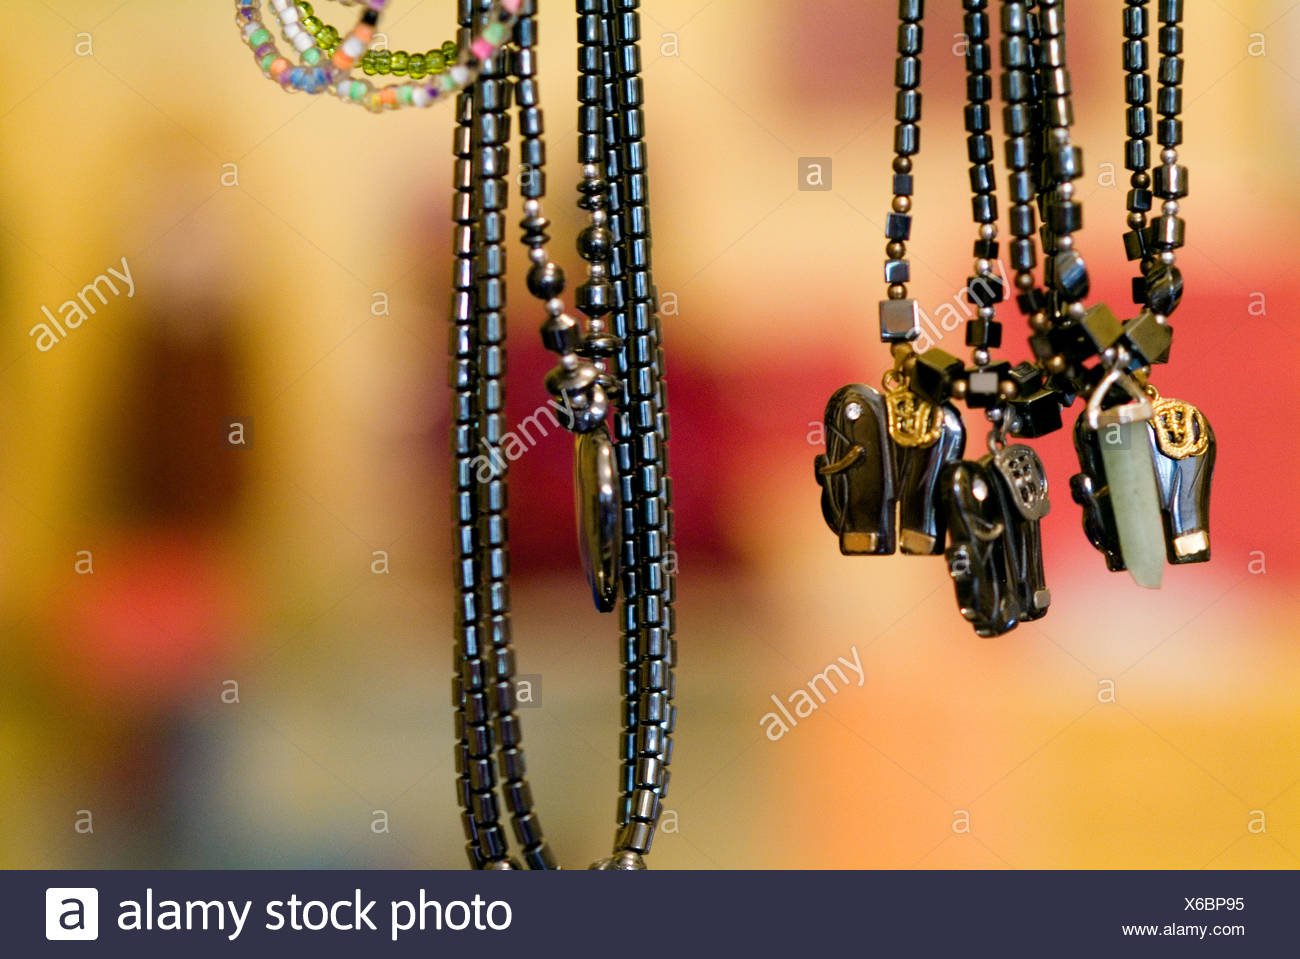 Close-up of Voodoo necklaces - Stock Image